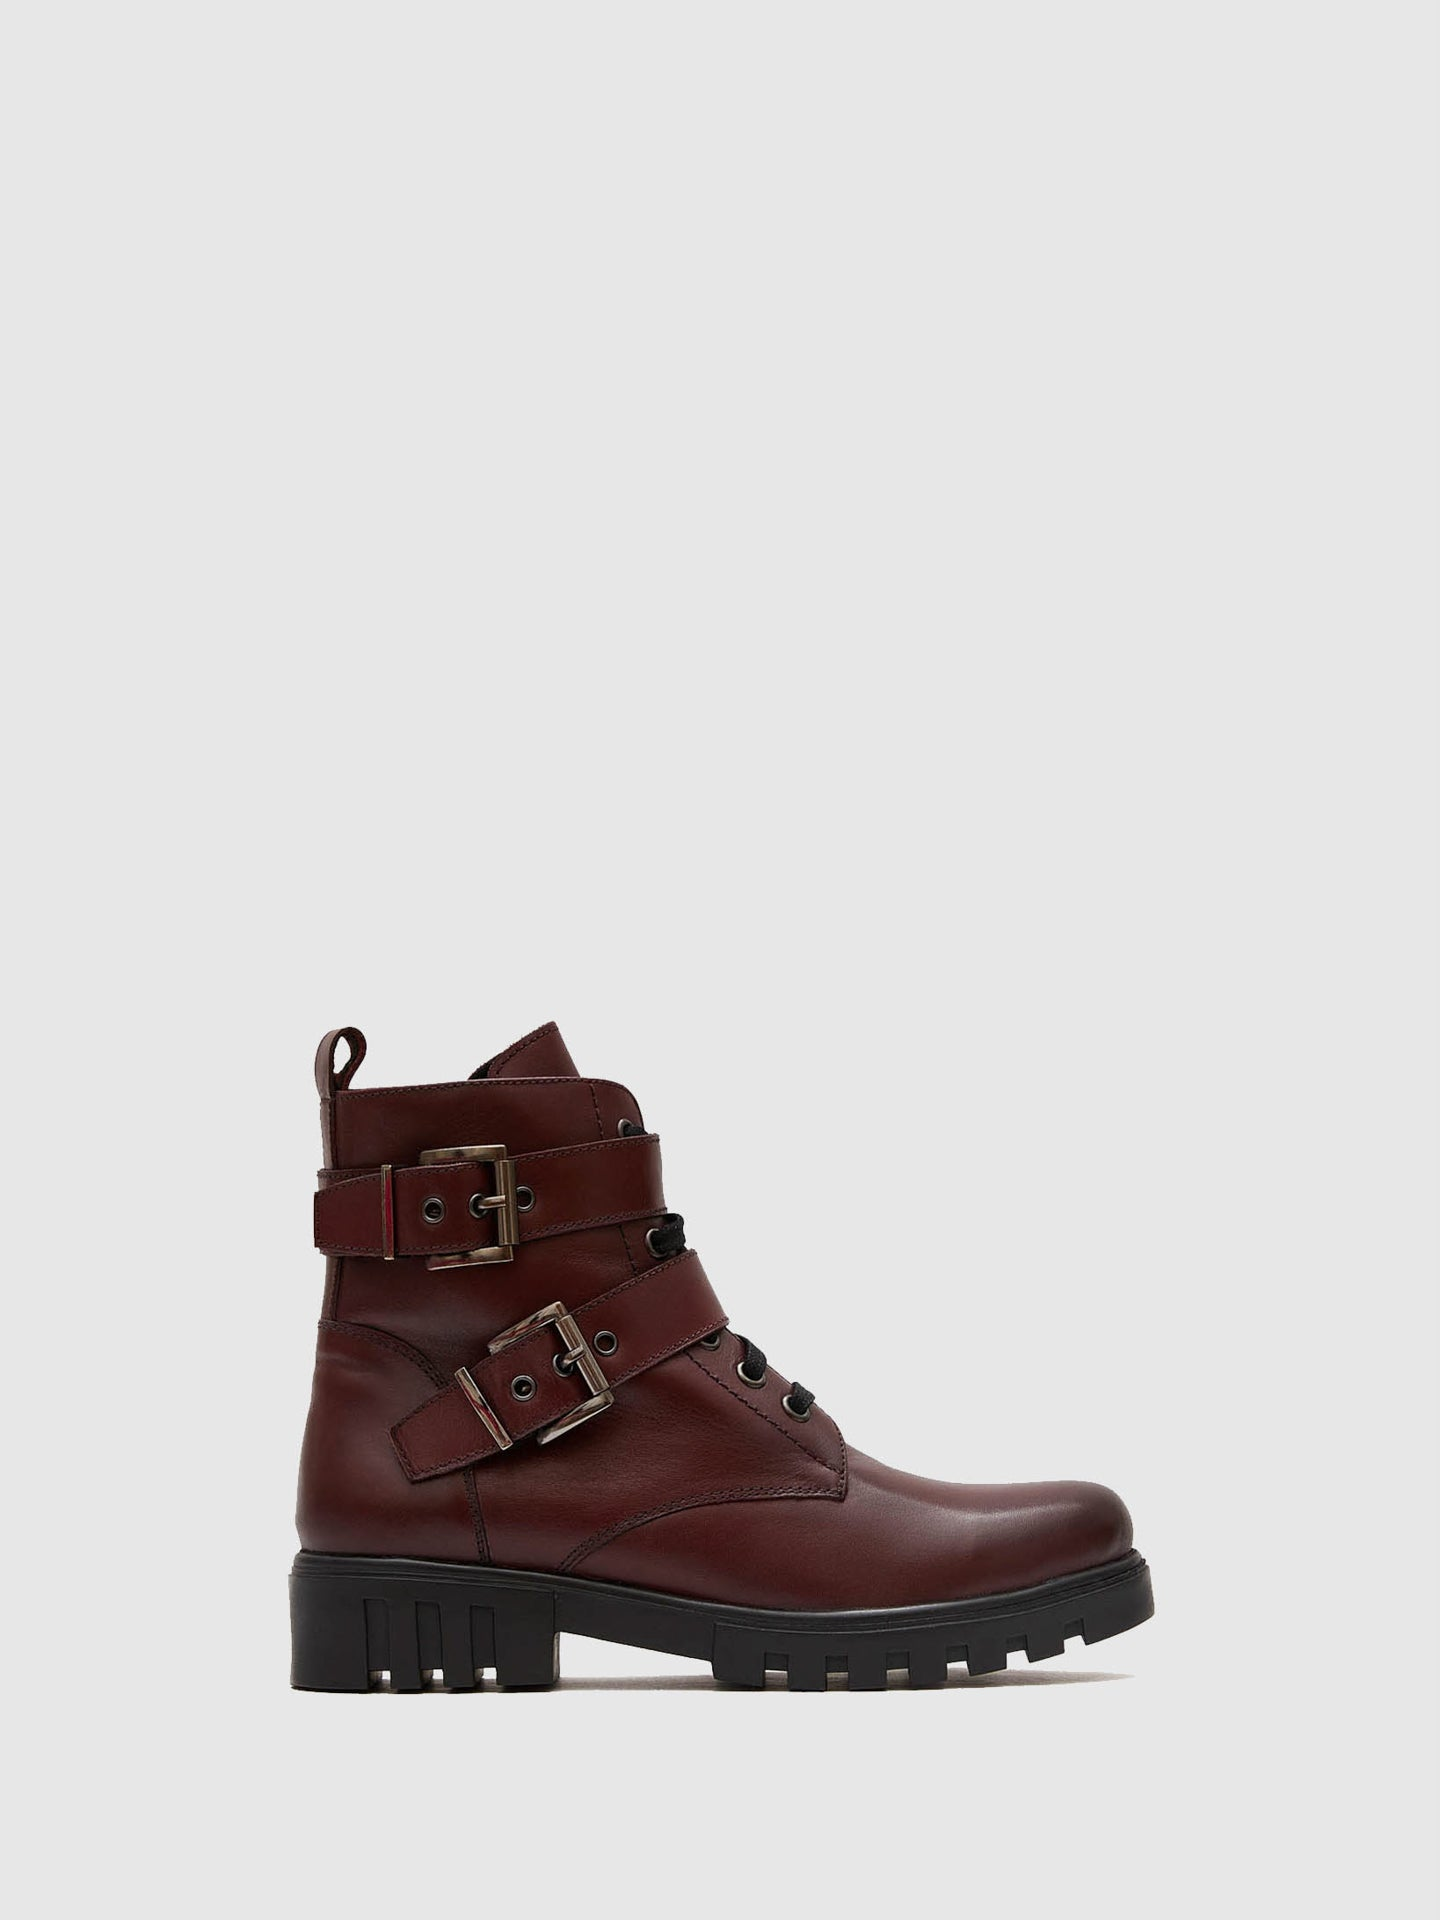 Marila Shoes DarkRed Lace-up Boots